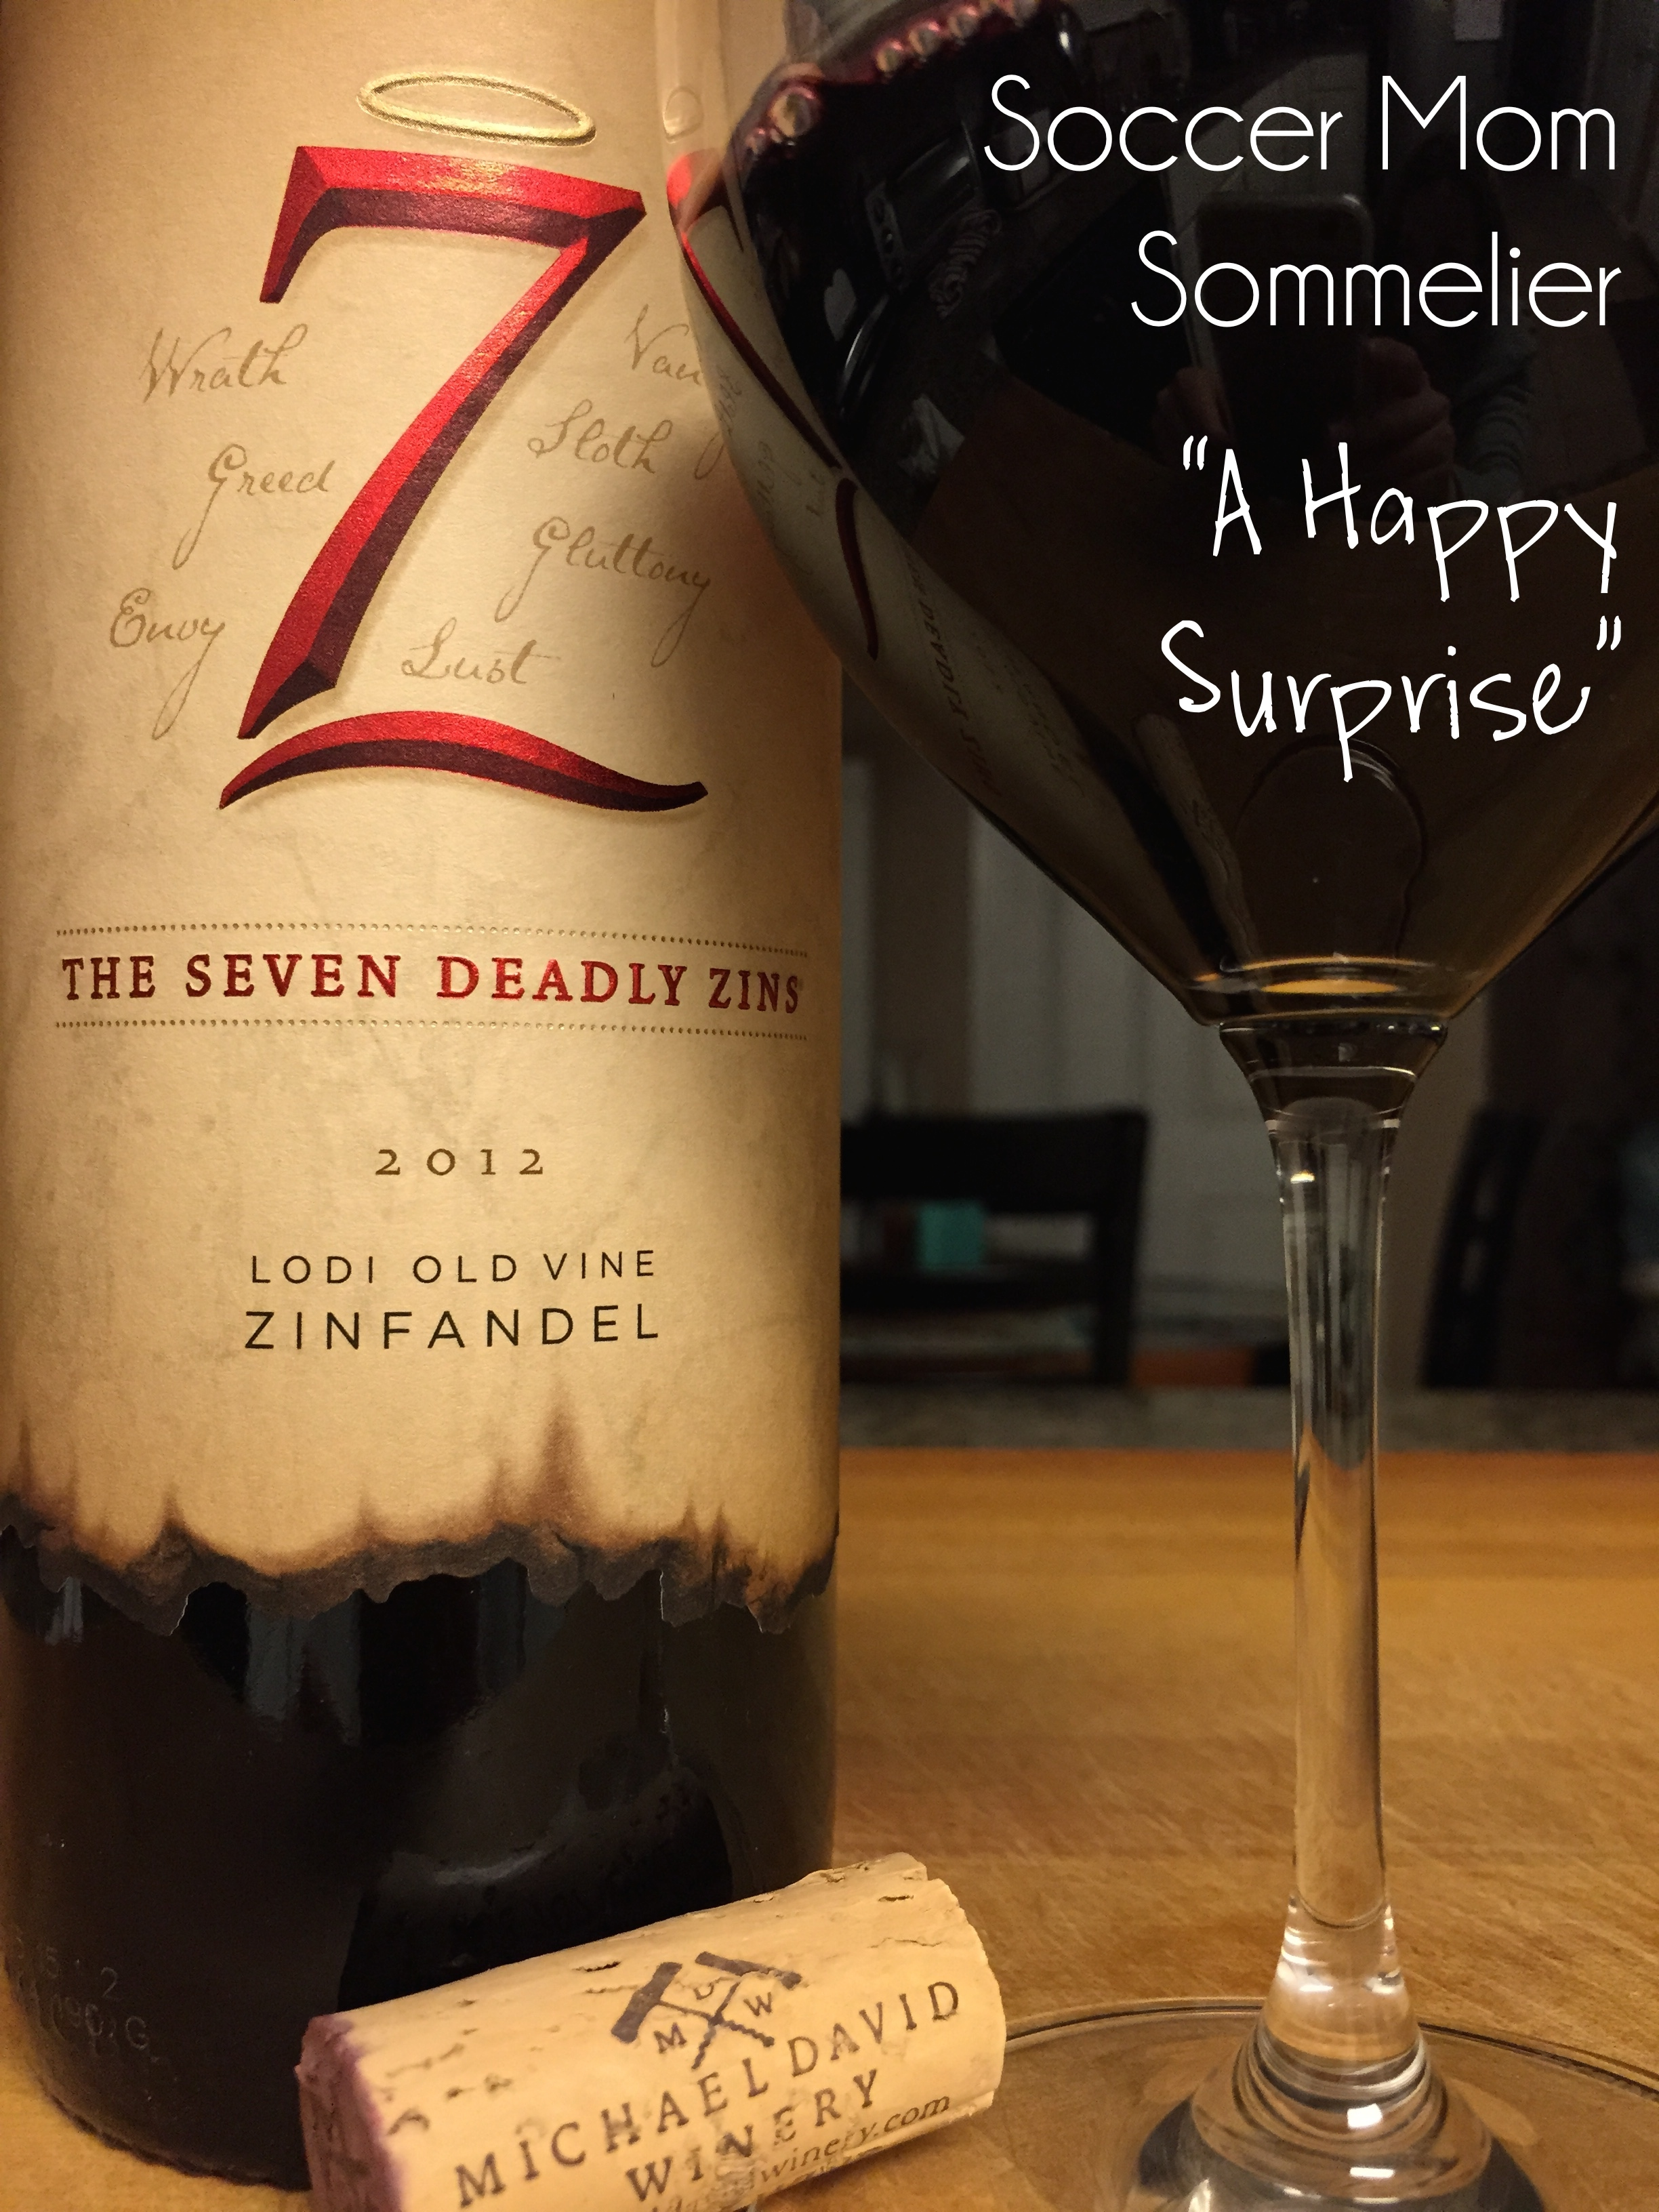 Soccer Mom Sommelier: The Seven Deadly Zins 2012 Zinfandel